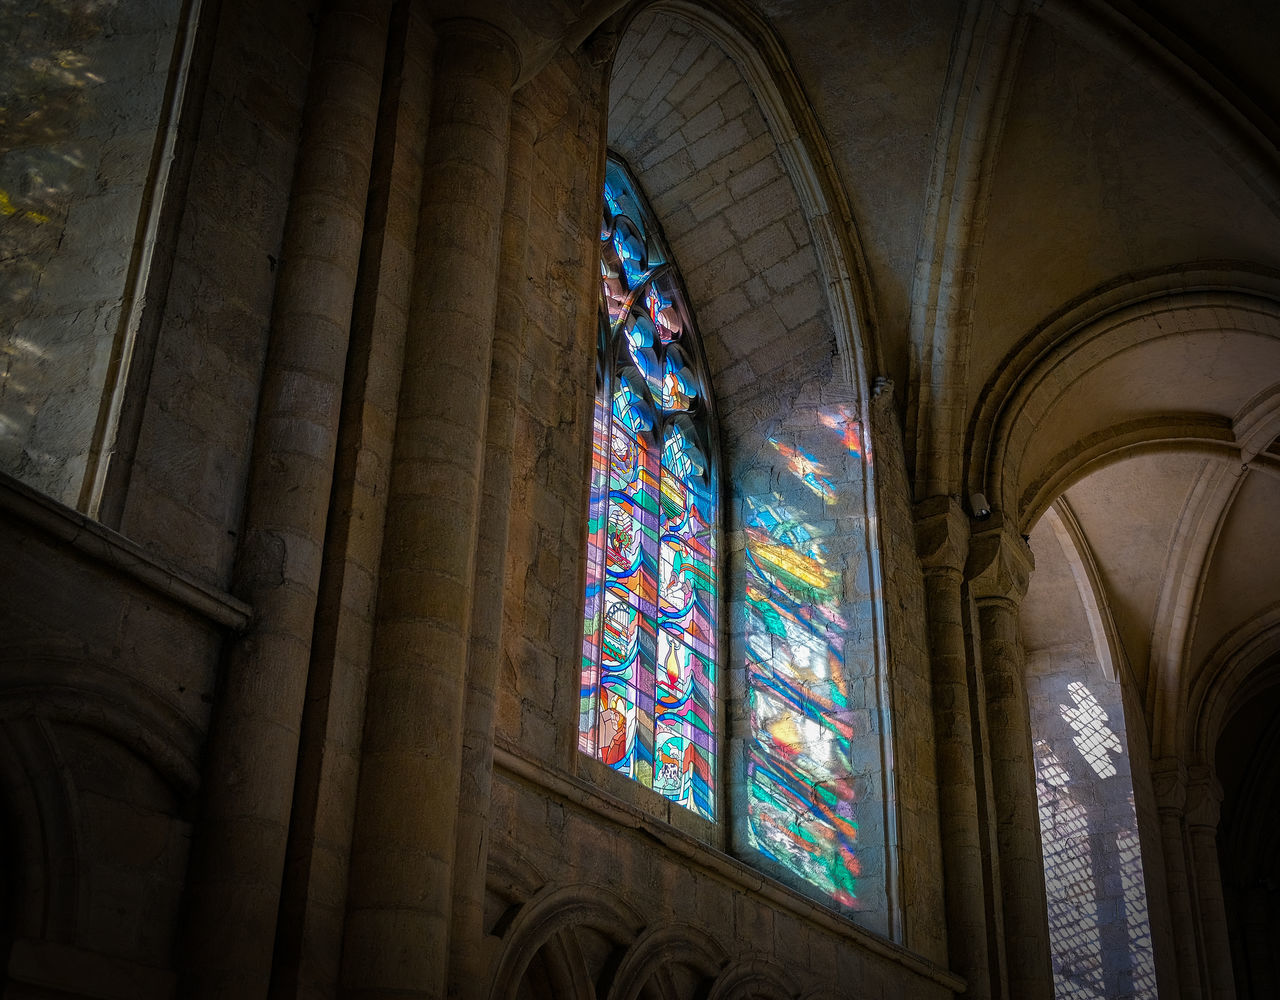 stained glass, religion, place of worship, belief, spirituality, glass, architecture, built structure, indoors, window, low angle view, glass - material, building, no people, architectural column, arch, ceiling, architecture and art, ornate